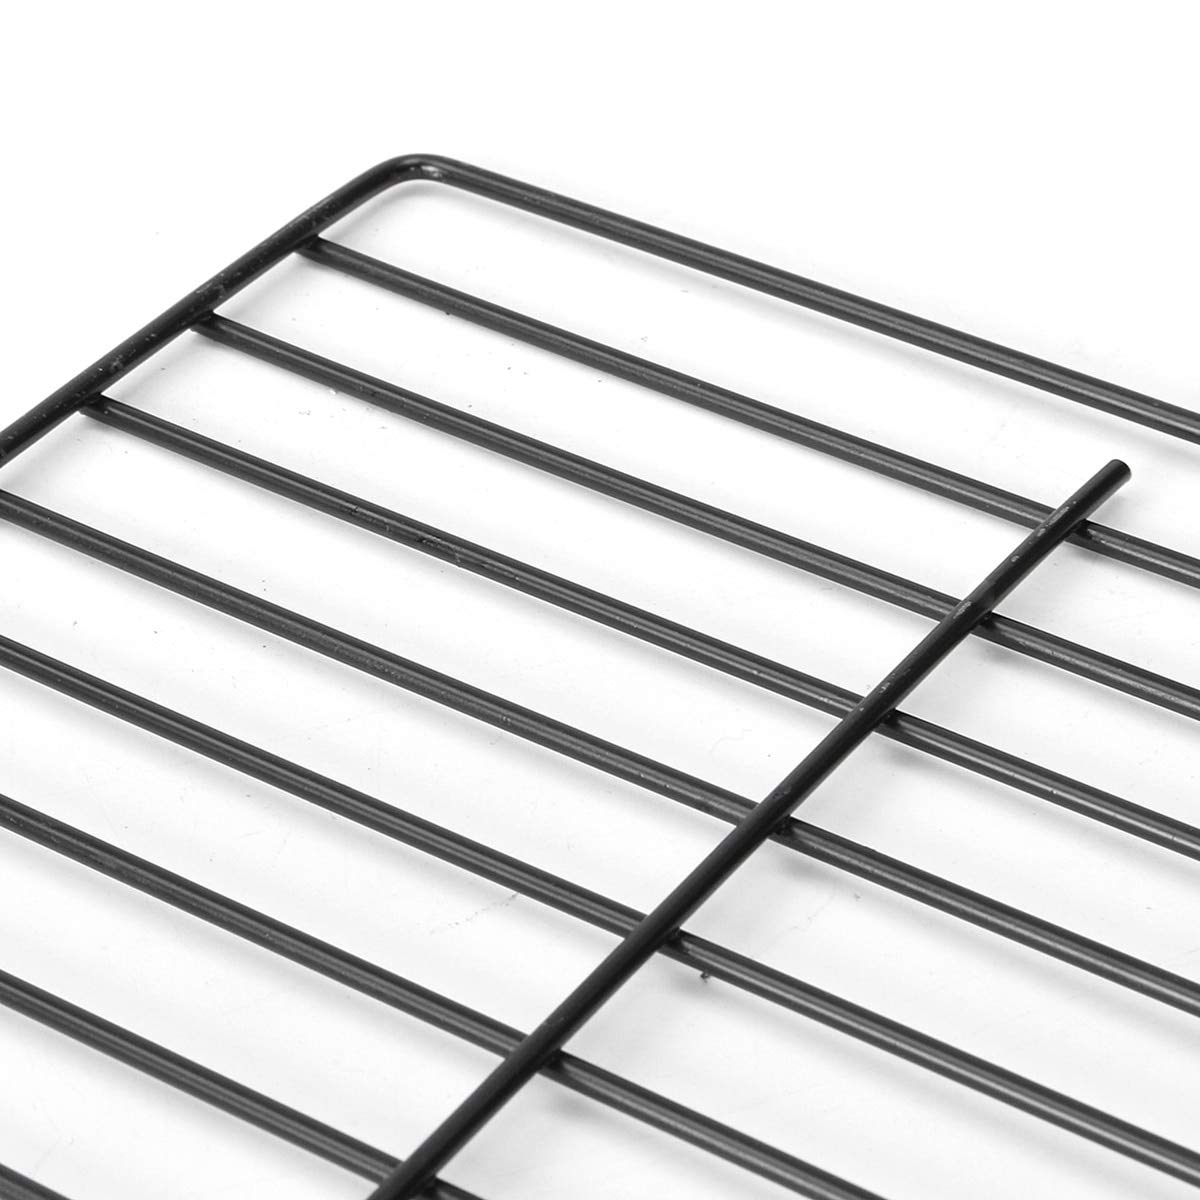 Dream-Zone Outdoor Barbecue Rack Barrel Portable Household Charcoal Grills BBQ Barbecue Grill Garden Outdoor Camping Picnic Cook BBQ Grill